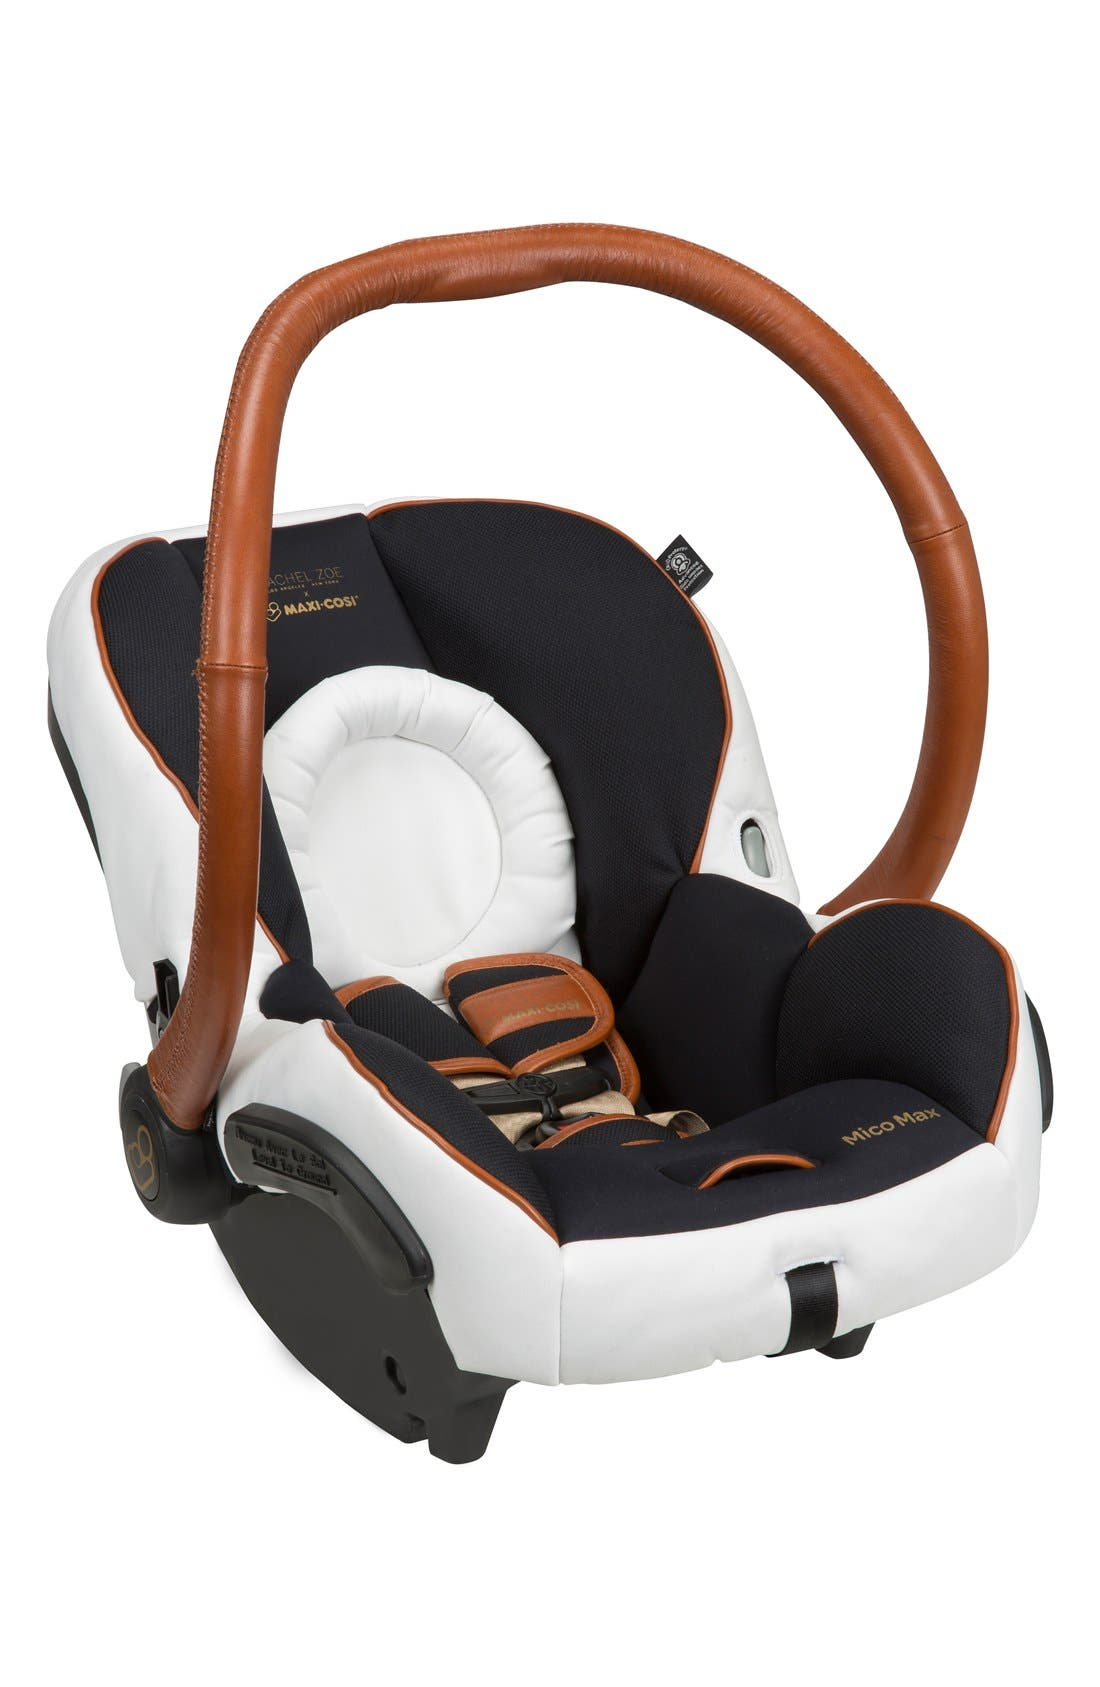 x Rachel Zoe Mico Max 30 - Special Edition Infant Car Seat,                         Main,                         color, 005